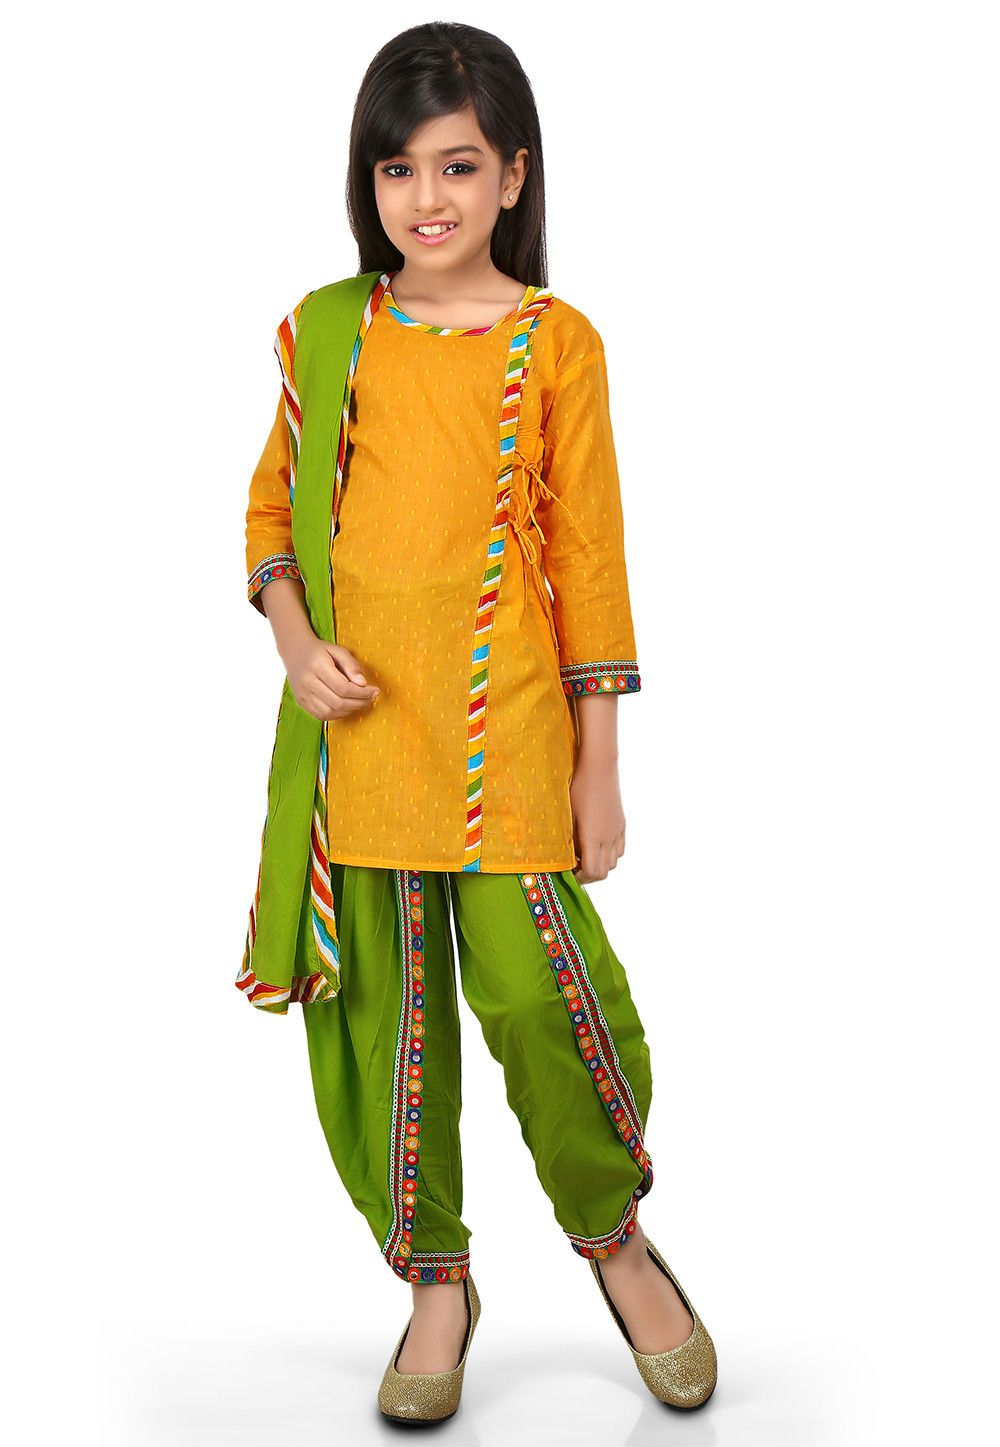 Kameez New Designs For Baby Girl